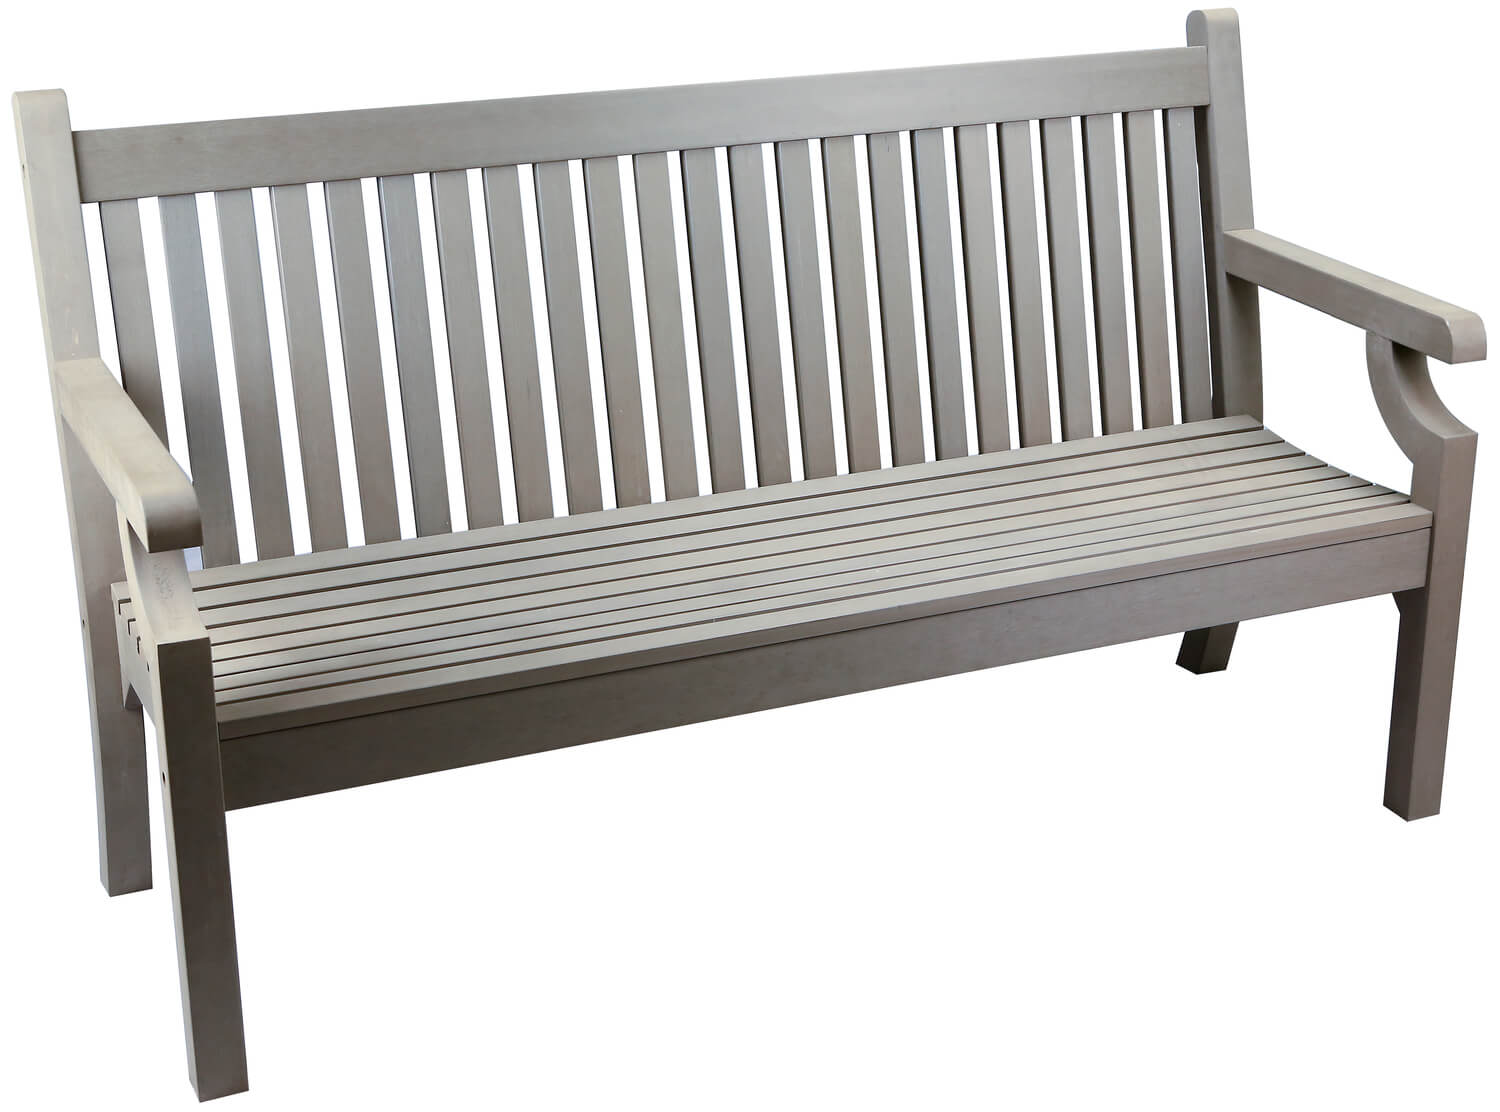 Sandwick Winawood 3 Seater Wood Effect Garden Bench Grey